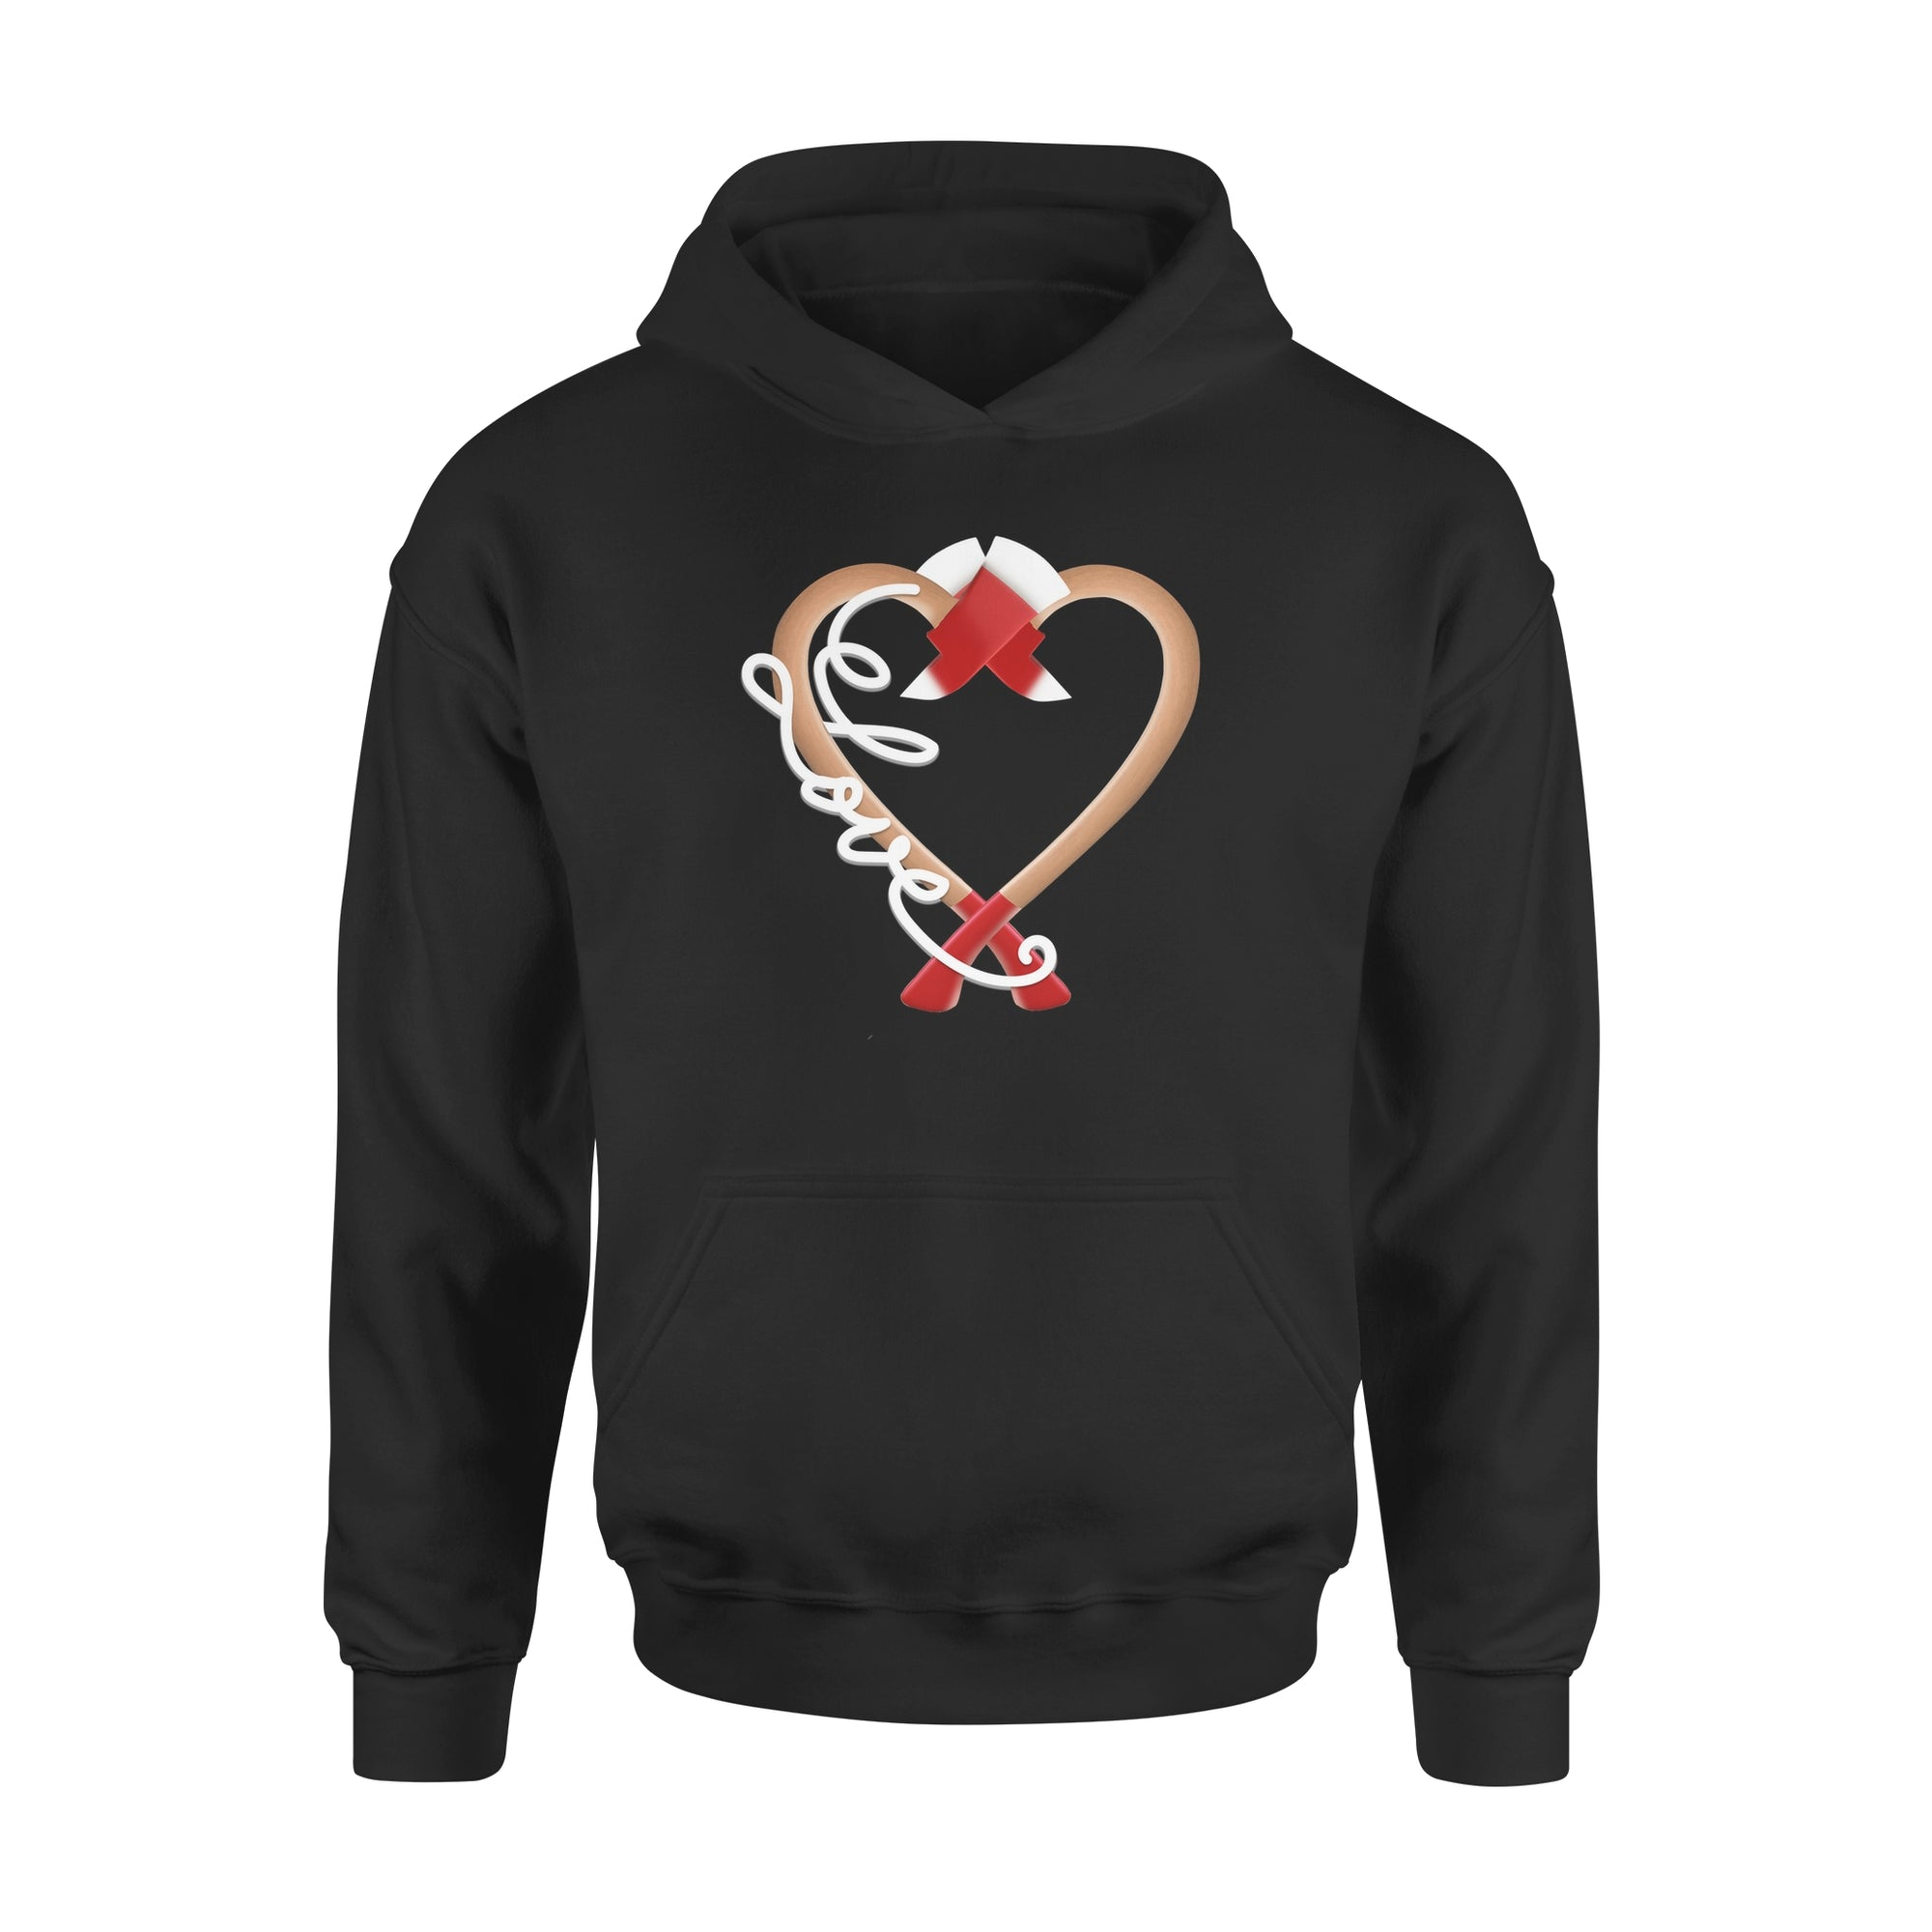 Vira Premium Hoodie for firefighter lovers